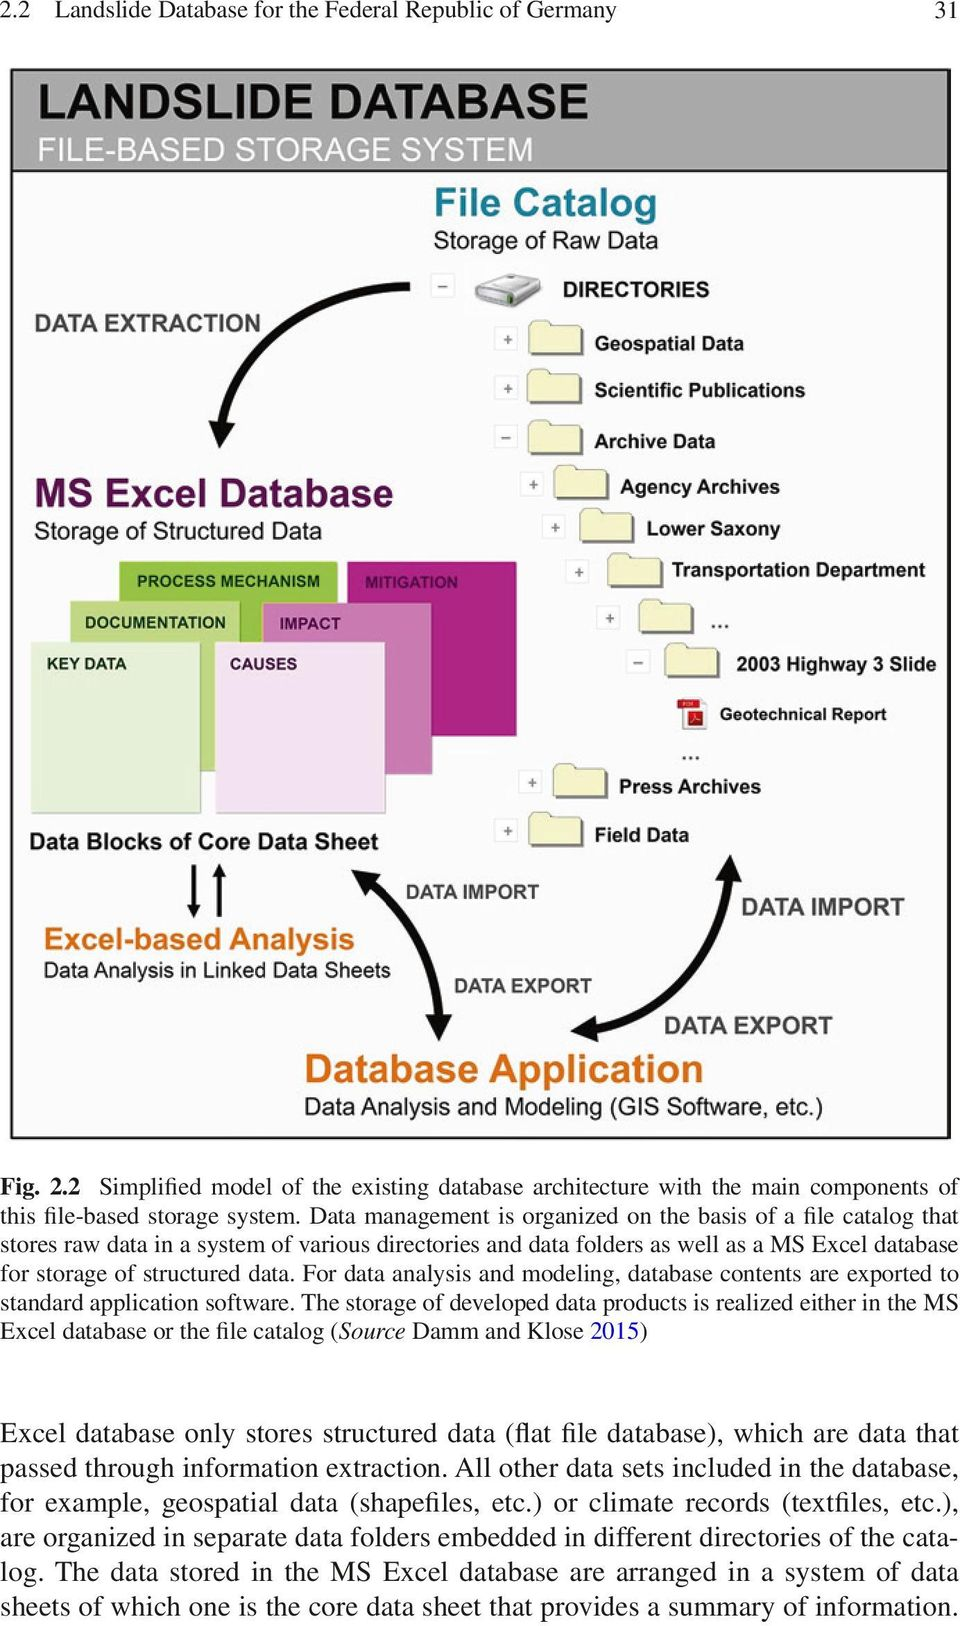 For data analysis and modeling, database contents are exported to standard application software.